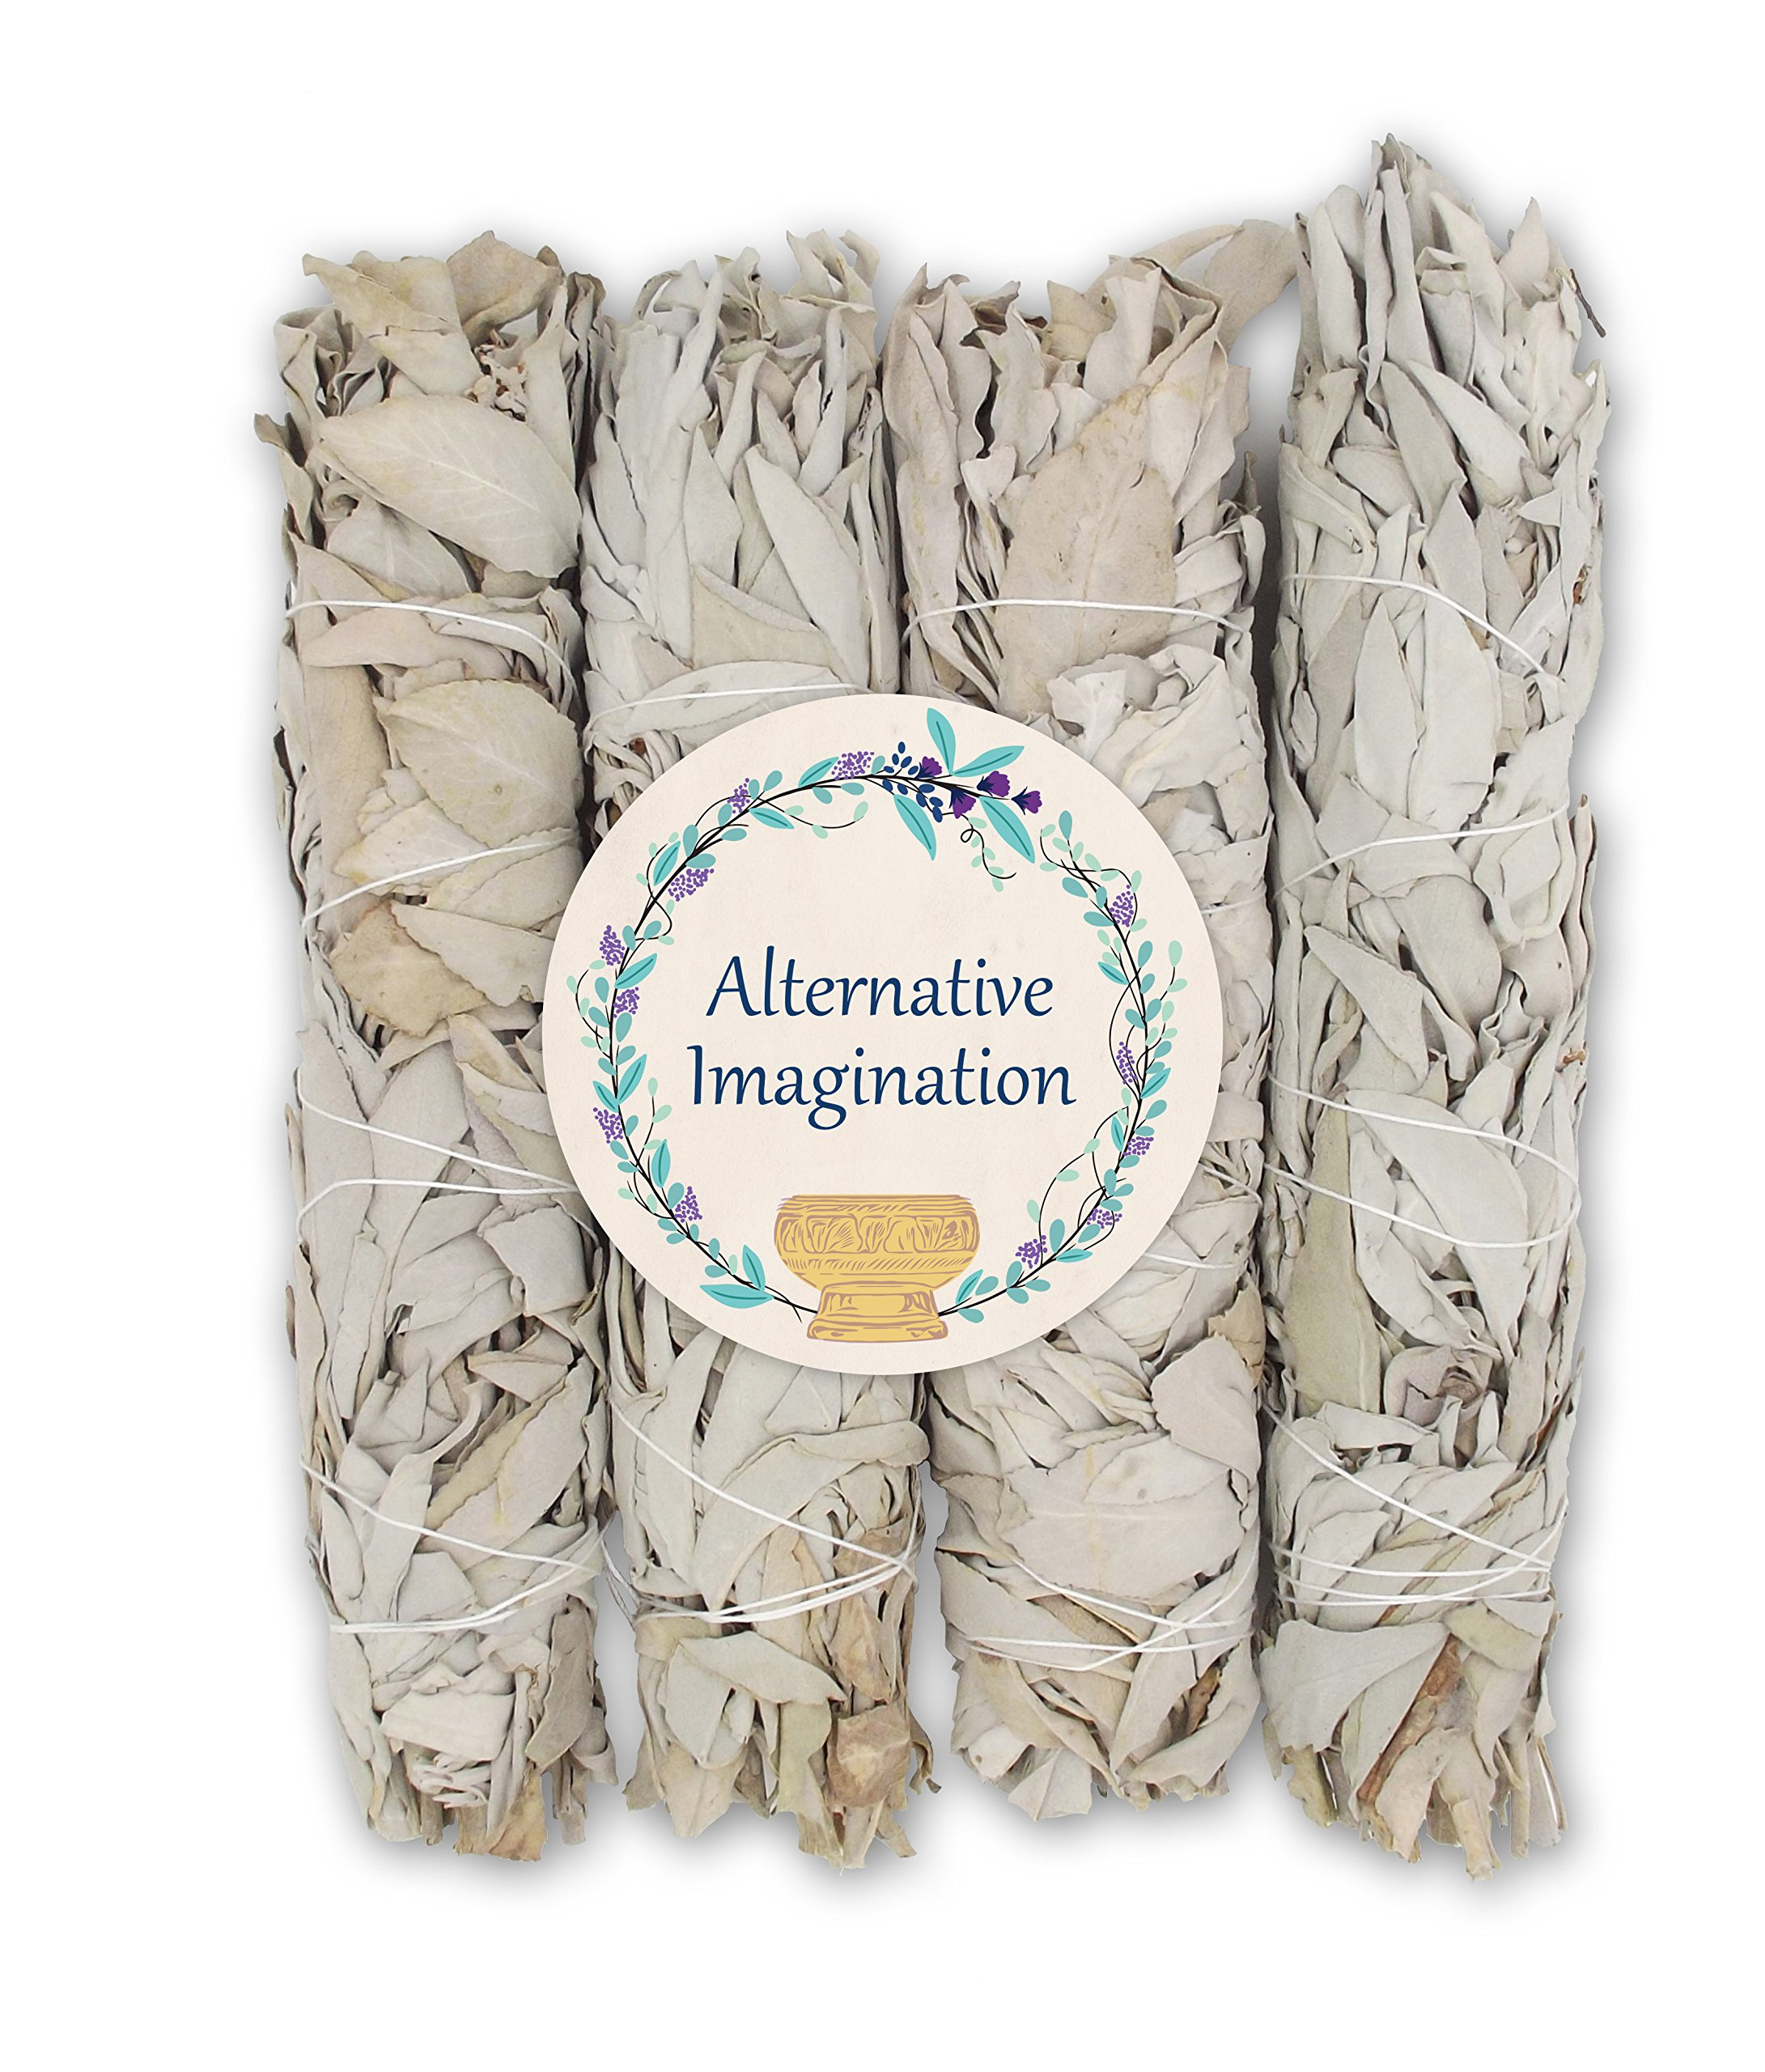 Extra Large California White Sage, Each Stick Approximately 8.5 Inches Long and 1.5 Inches Wide for Smudging Rituals, Energy Clearing, Protection, Incense, Meditation, Made in USA (4 - Extra Large)